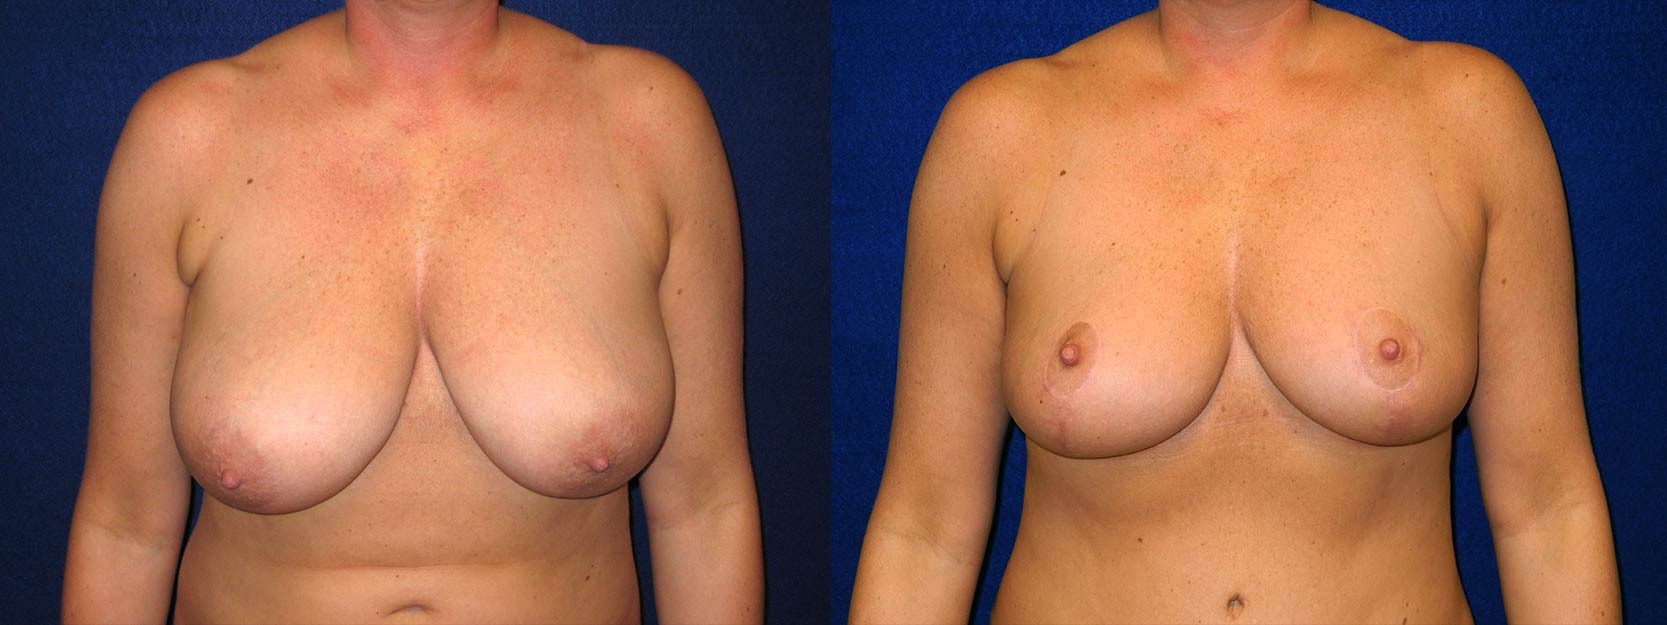 Frontal View - Breast Reduction